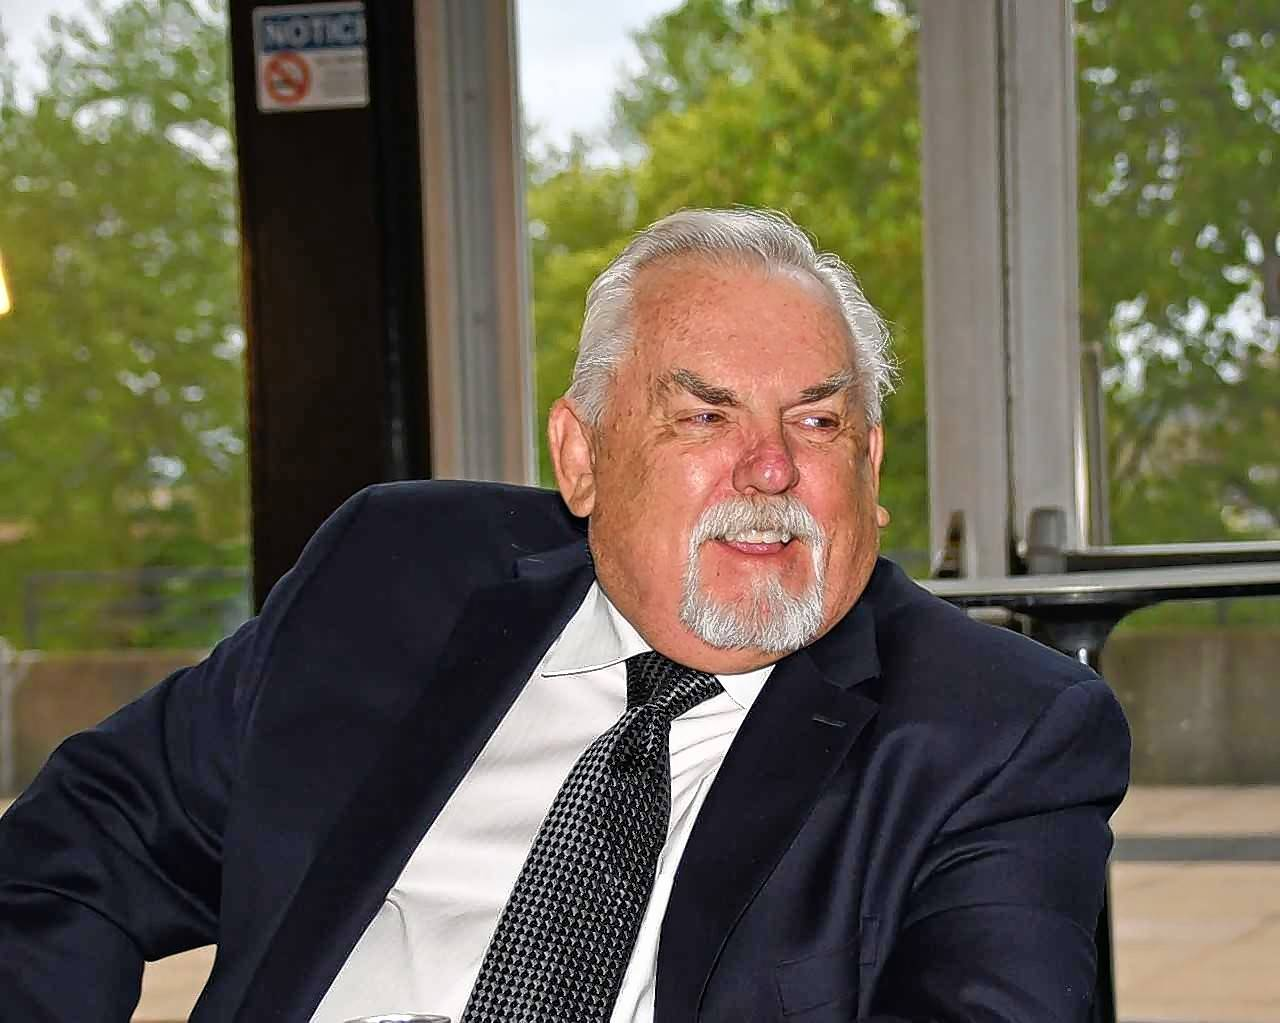 """Cheers"" star and Pixar voice performer John Ratzenberger spoke in Elgin Tuesday at the annual awards show put on by students and staff from South Elgin High School's Beacon Academy of Media and Digital Arts."